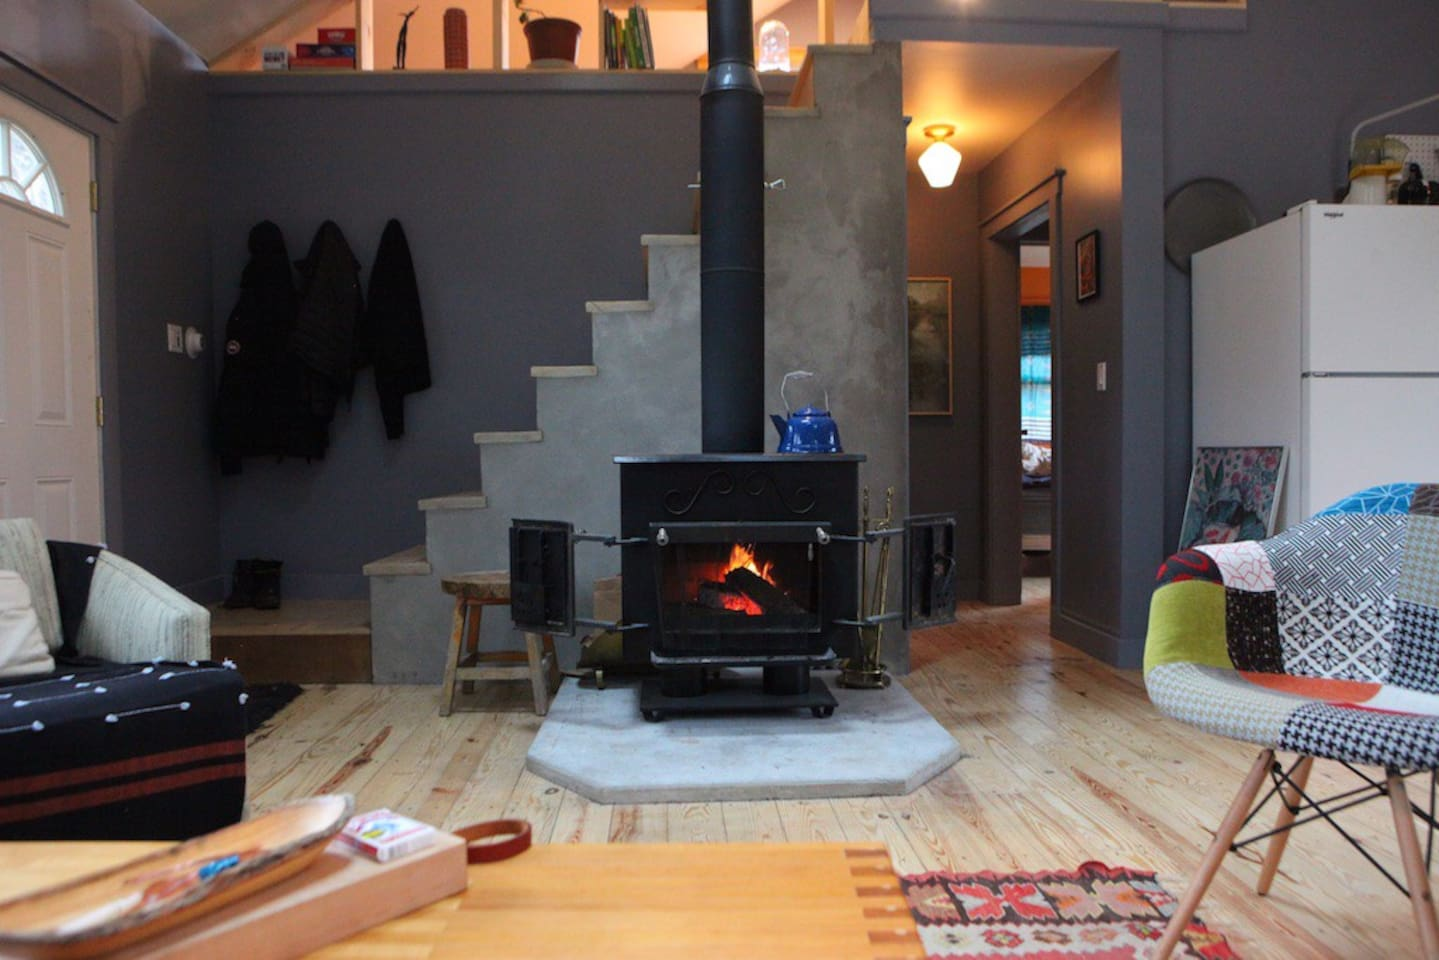 wood stove adds cozy ambiance and makes the house toasty during winter months